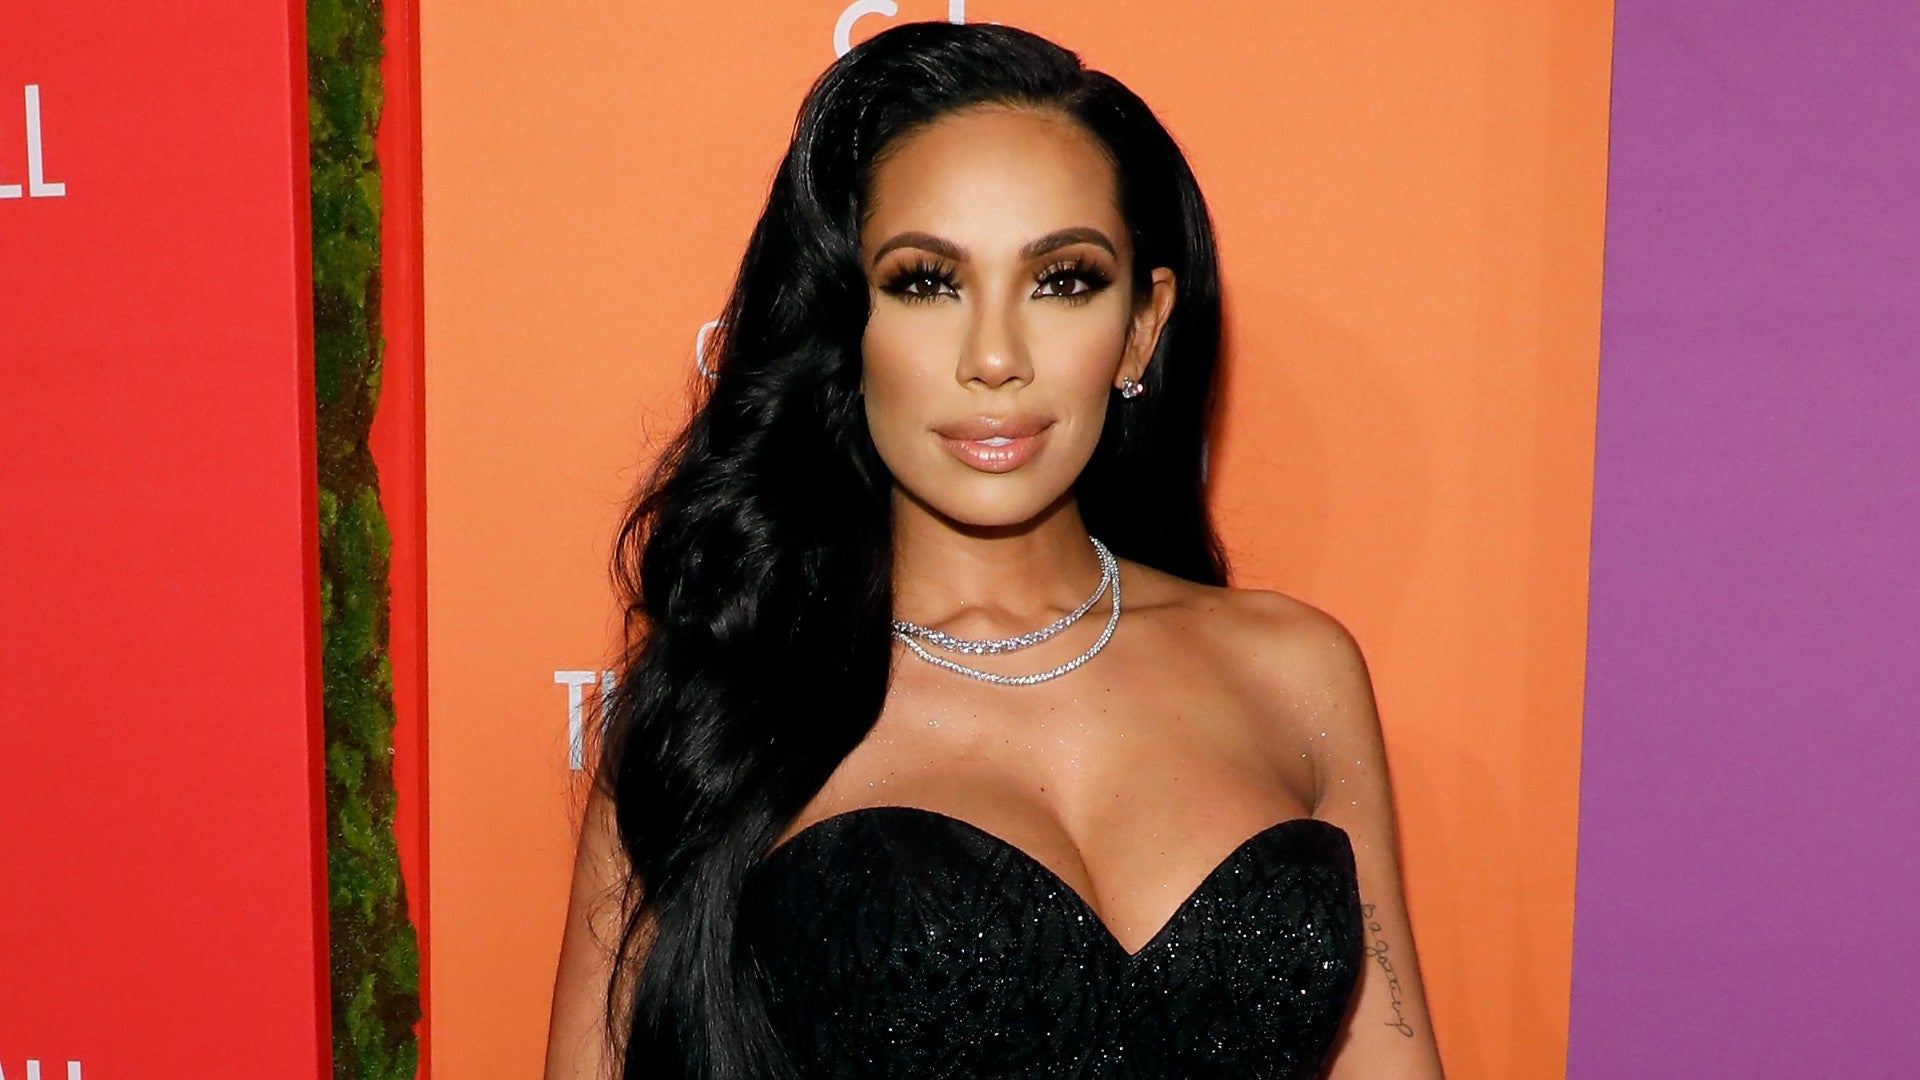 erica-mena-announces-a-big-giveaway-on-her-social-media-account-see-the-video-that-has-some-fans-criticizing-her